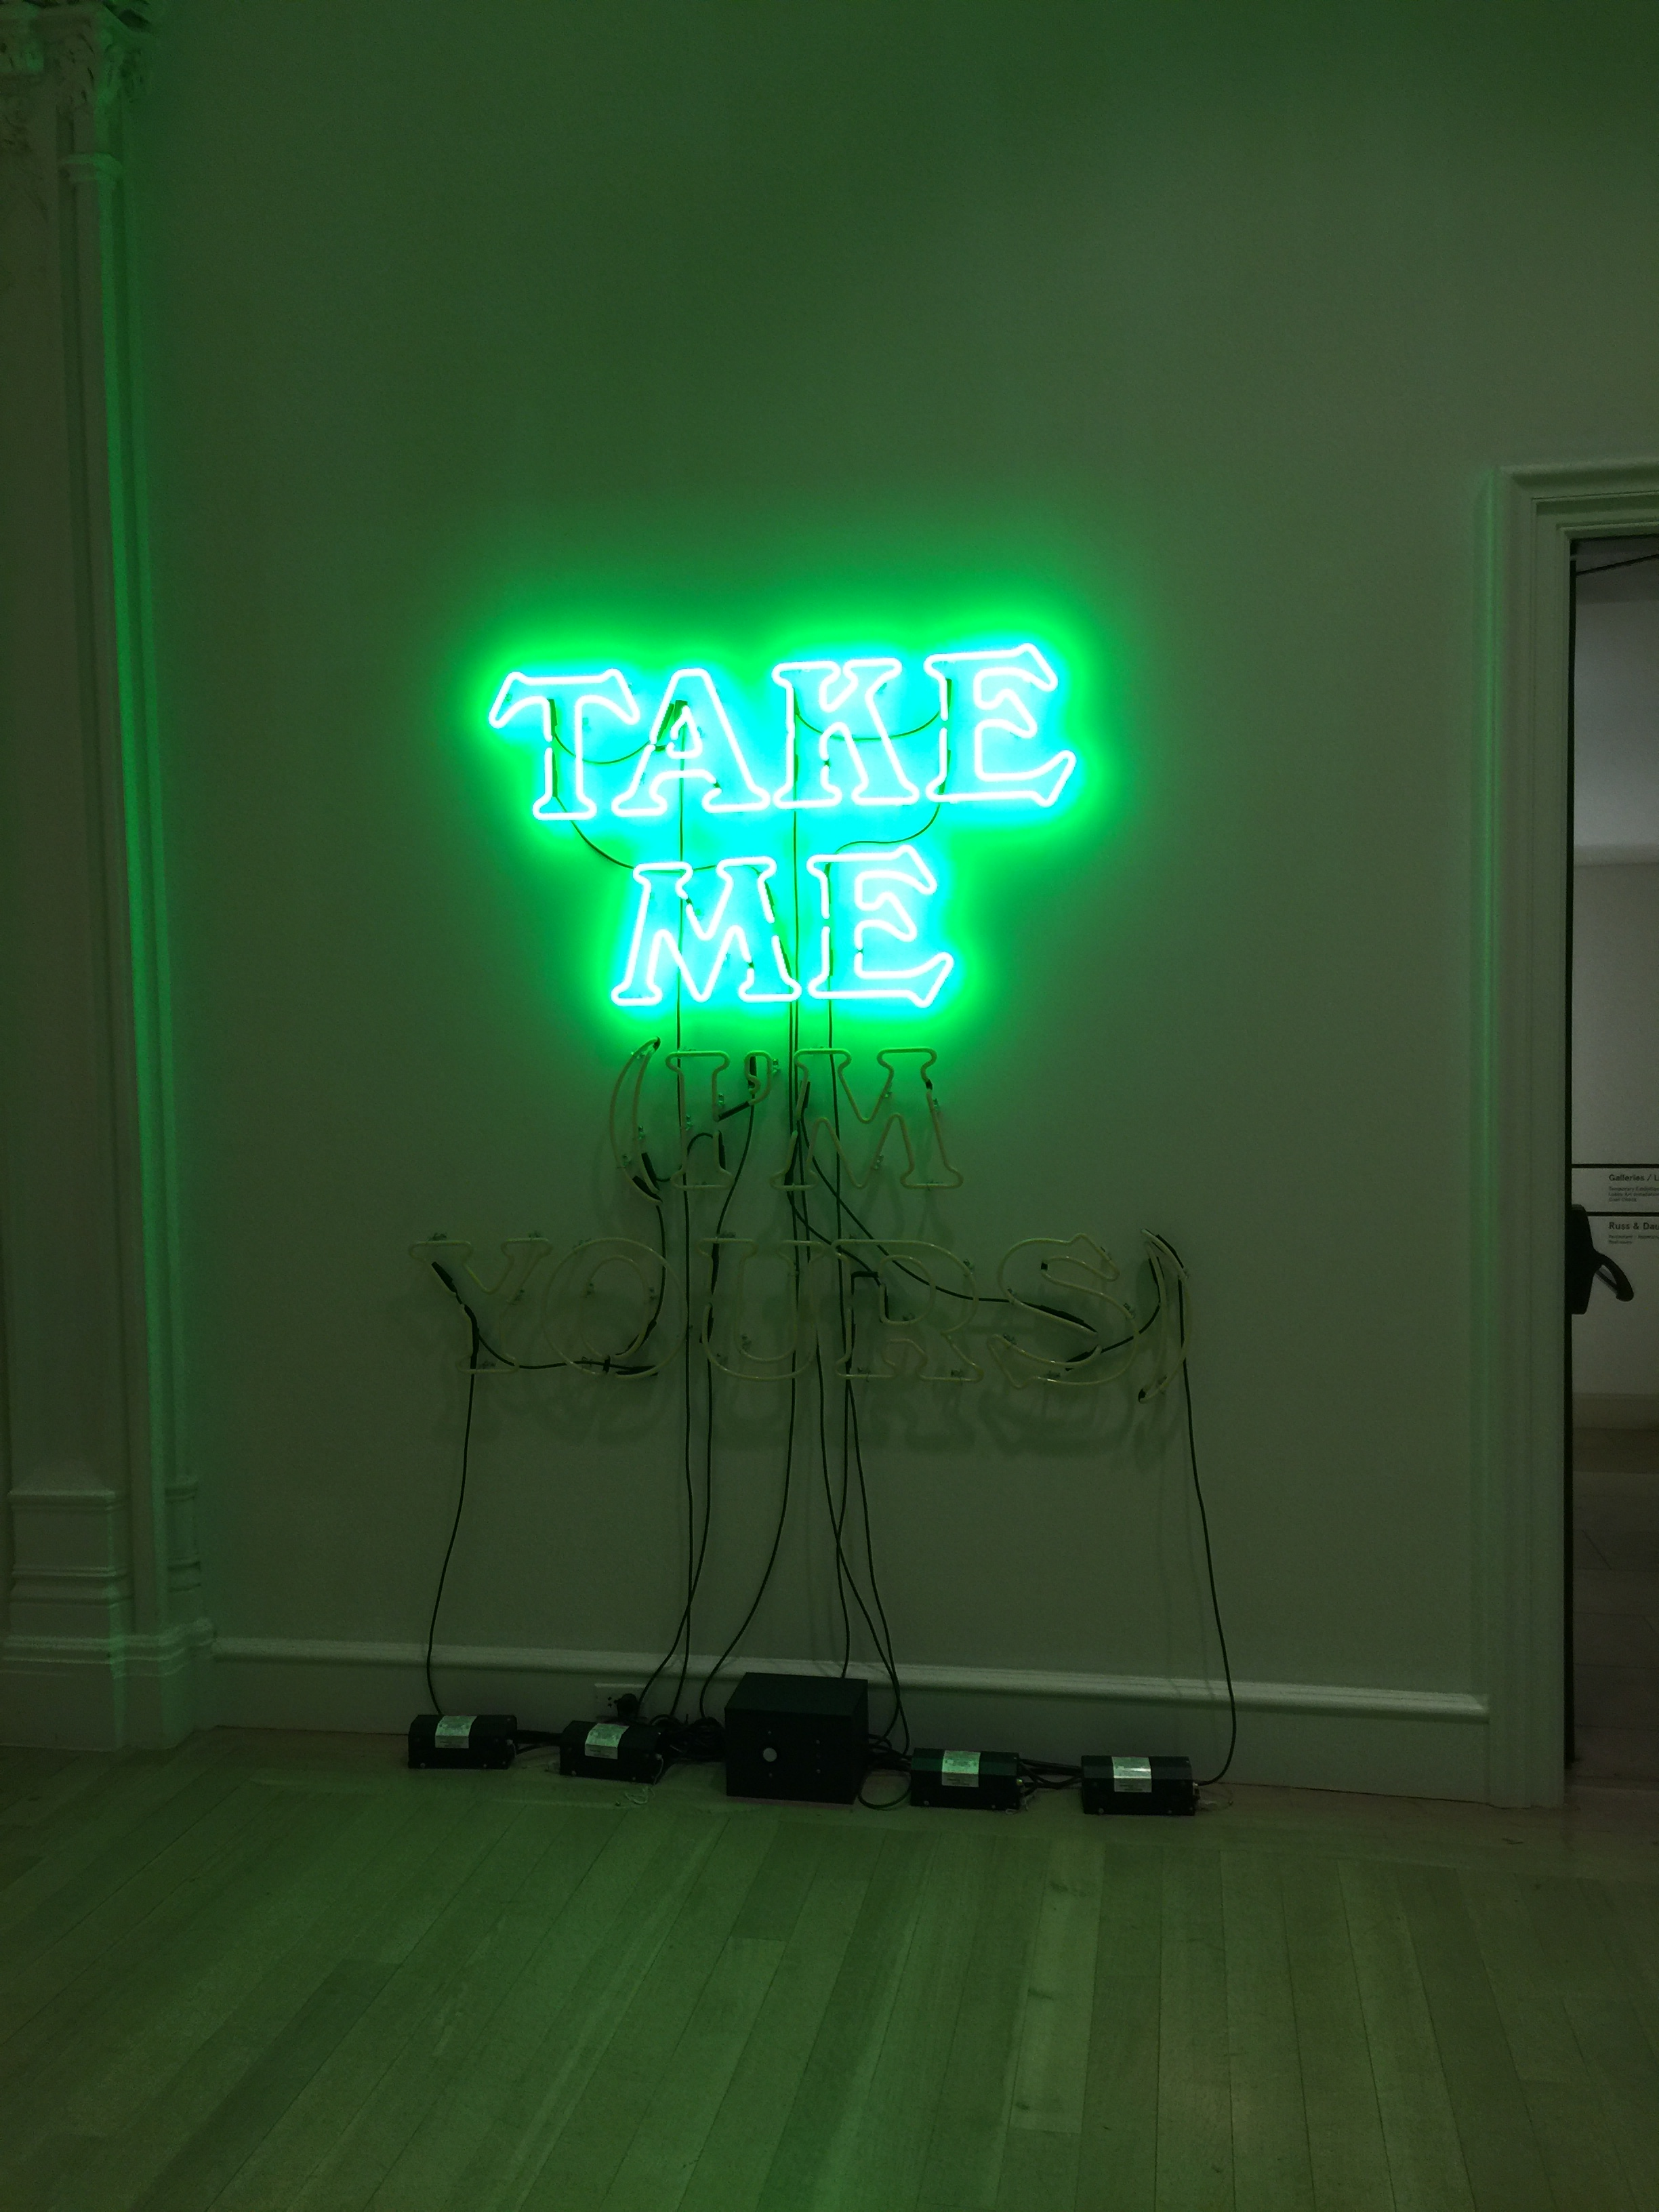 Exhibition Review: Take Me (I'm Yours) – Jewish Museum (Sept 16, 2016 – Feb 7, 2017)